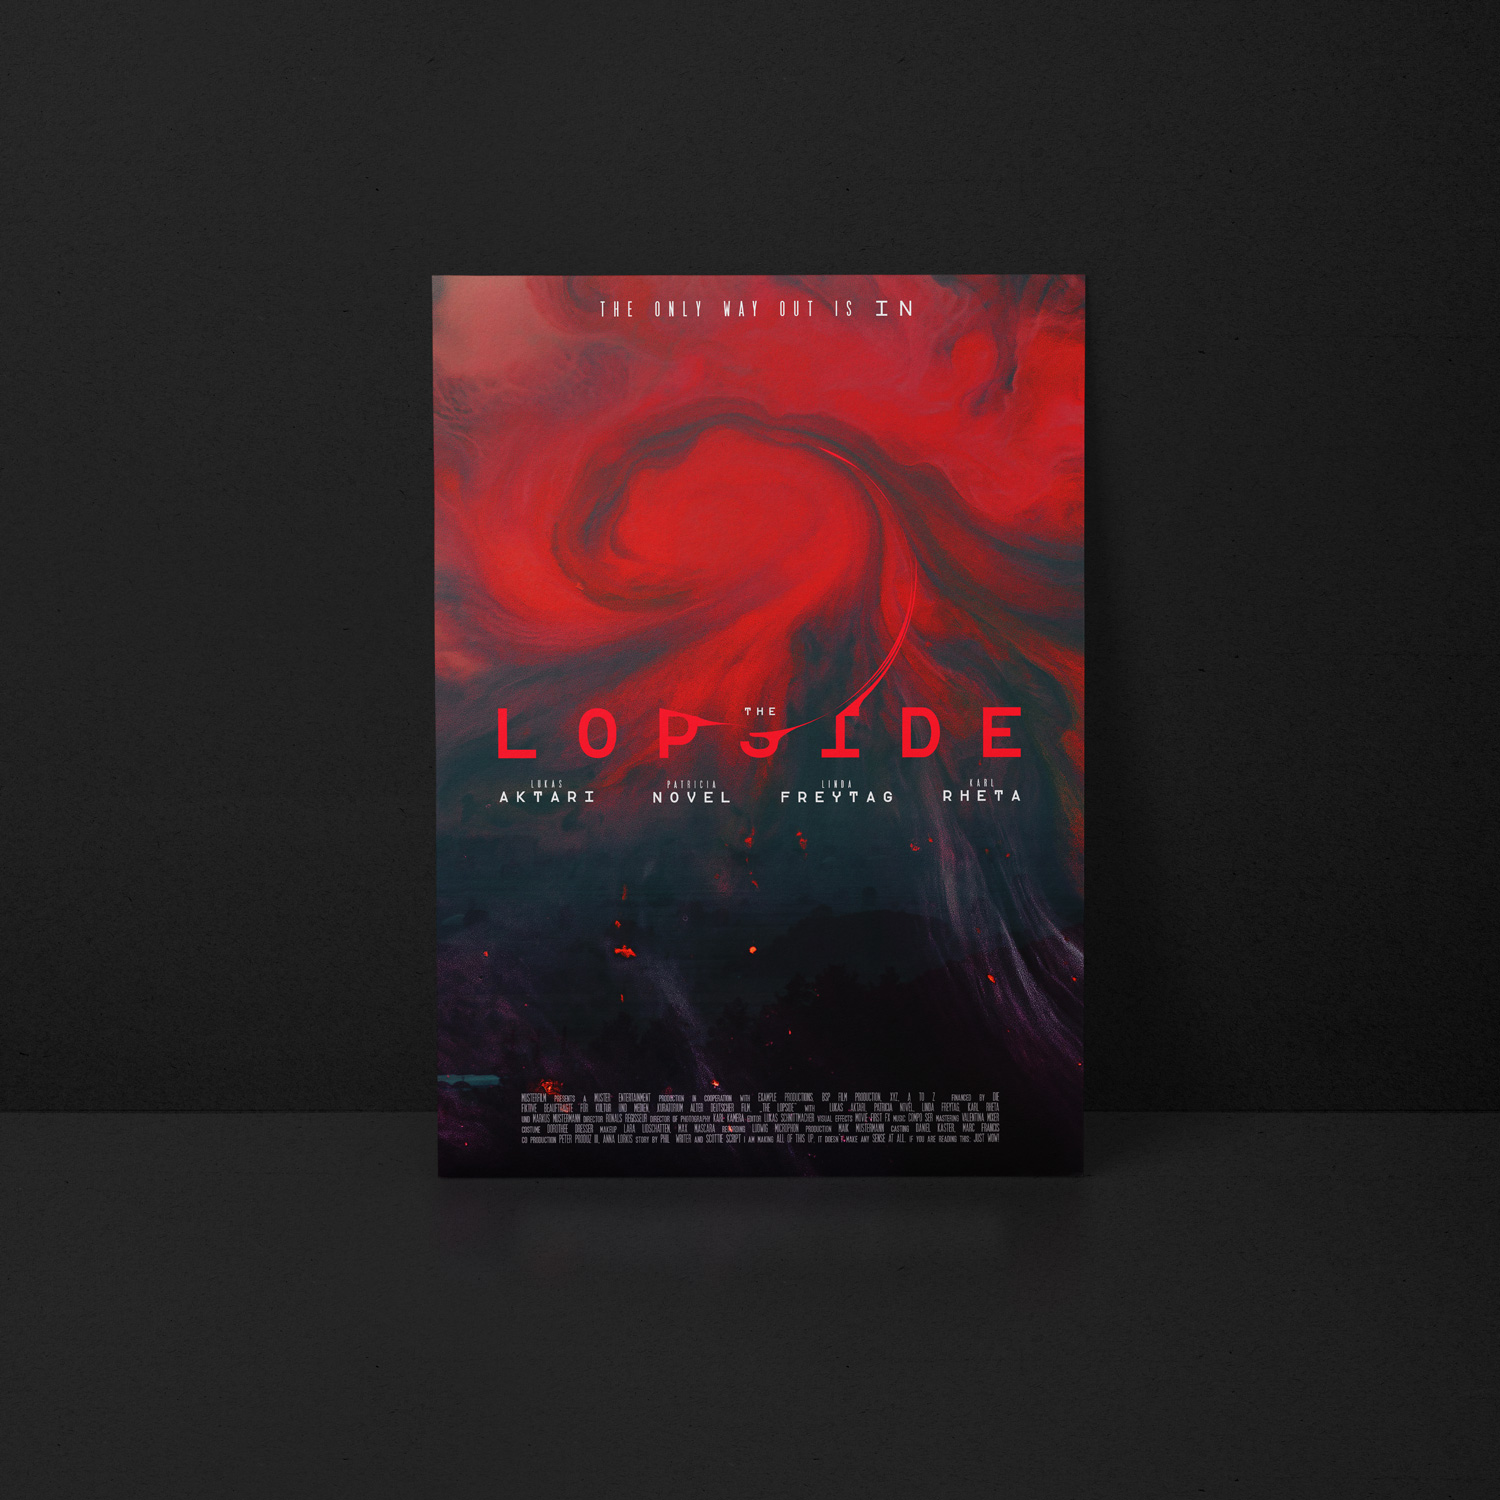 LOPSIDE Movie Poster designed by Tobias Heumann